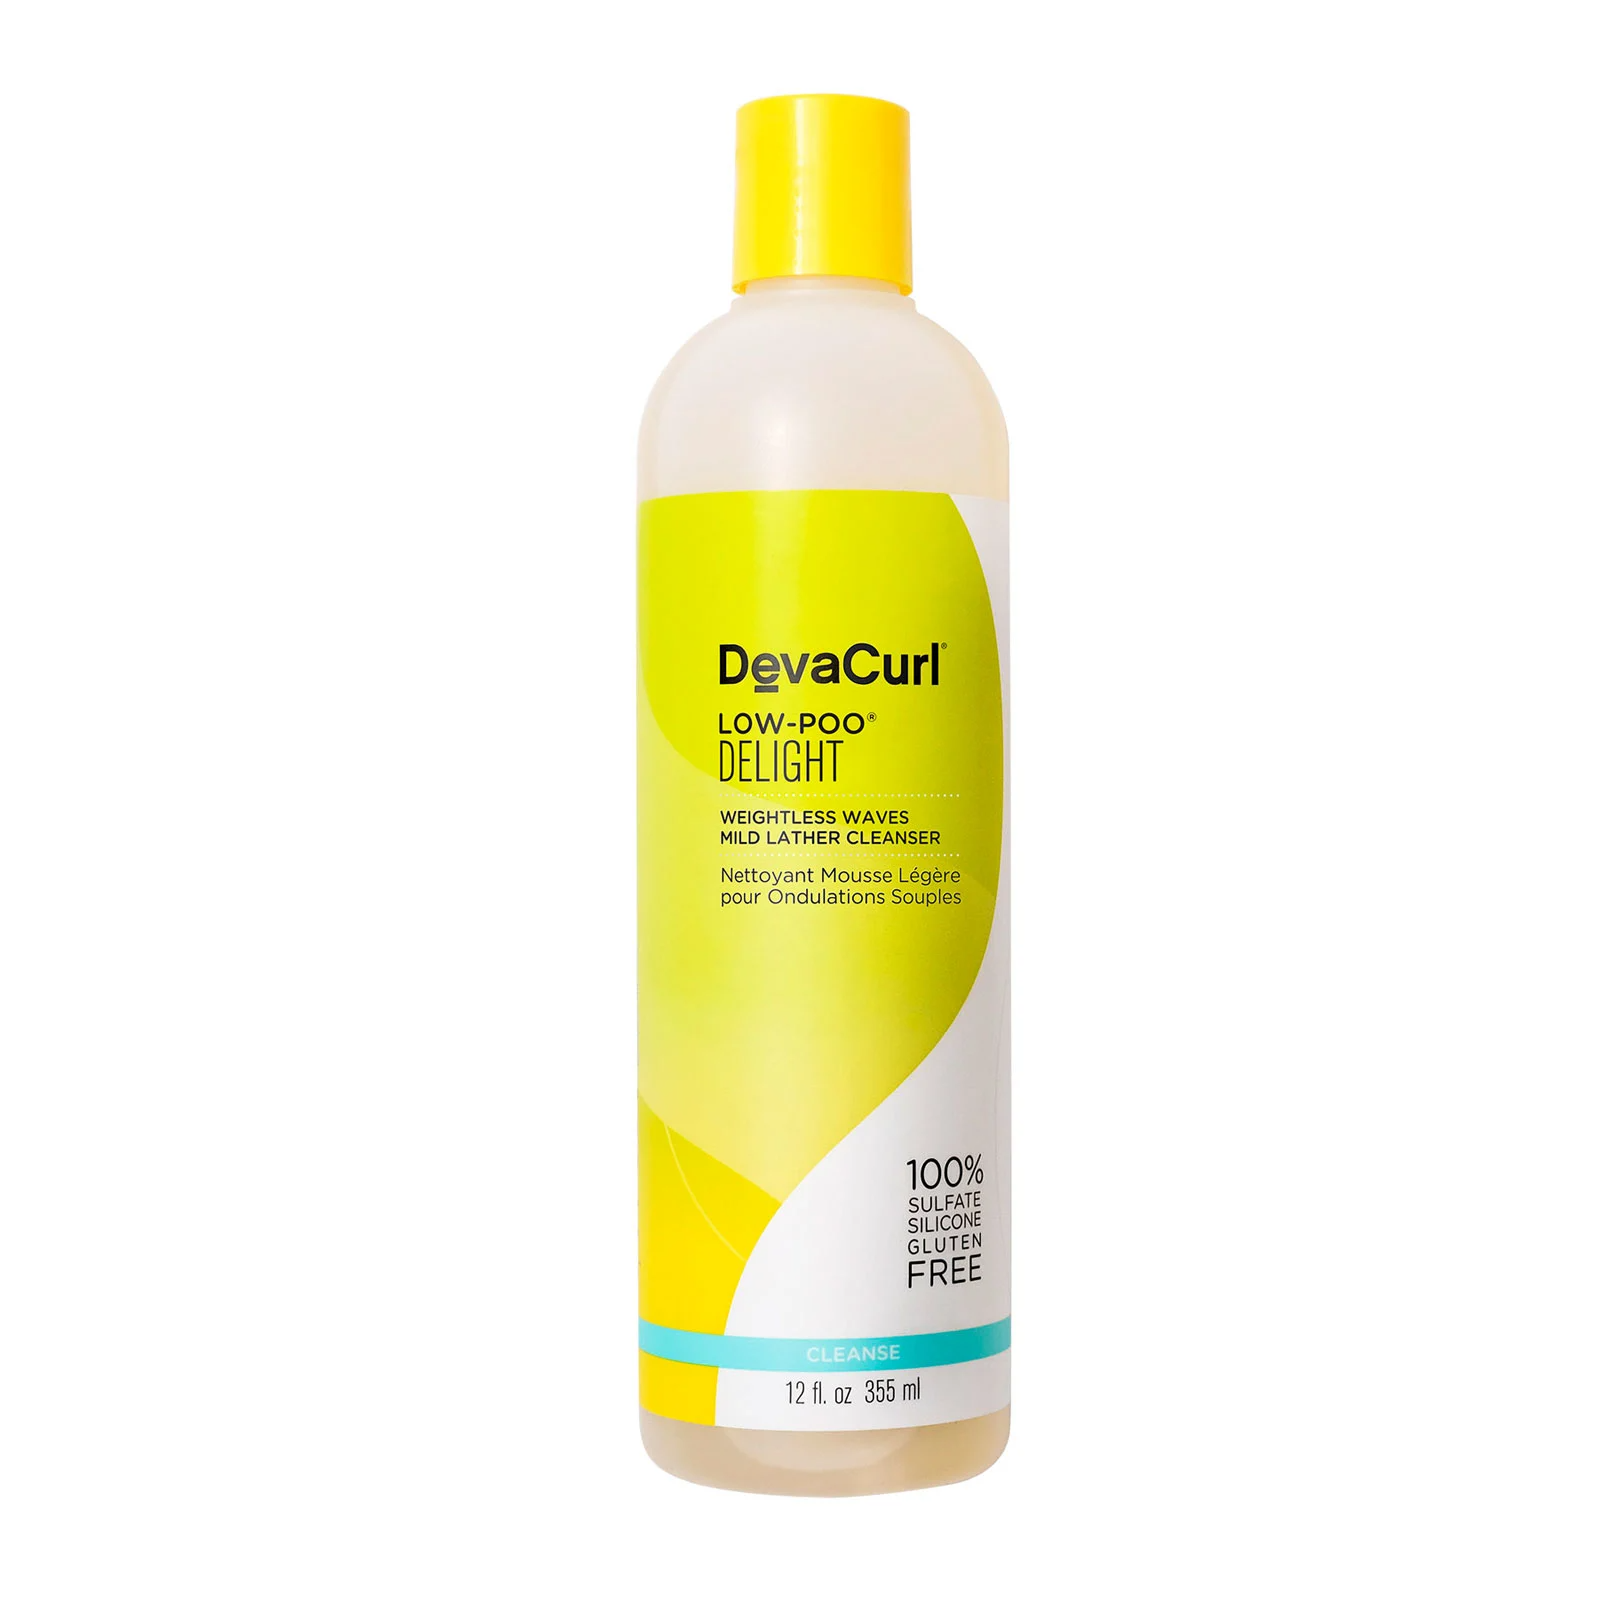 DevaCurl Low-Poo Delight Weightless Waves Mild Lather Cleanser, 360ml, Hair Care, London Loves Beauty